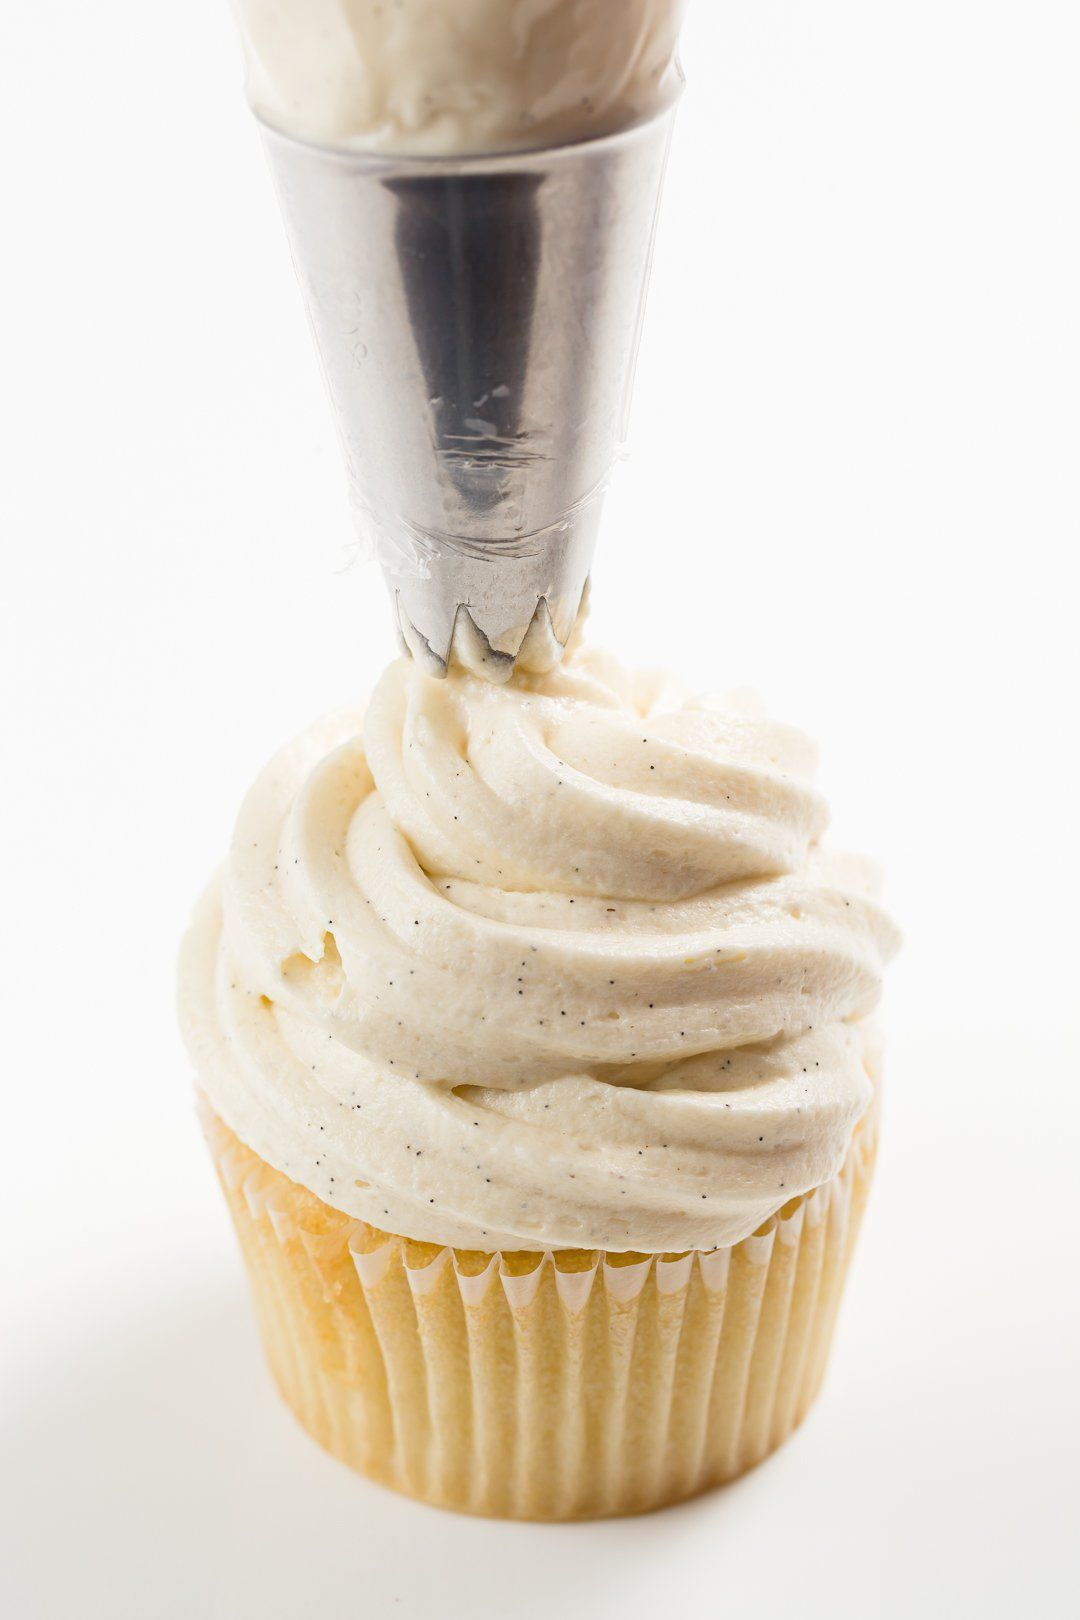 Sour Cream Frosting Tangy And Sweet Buttercream Recipe In 2020 Sour Cream Frosting Sour Cream Icing Cookie And Cream Cupcakes